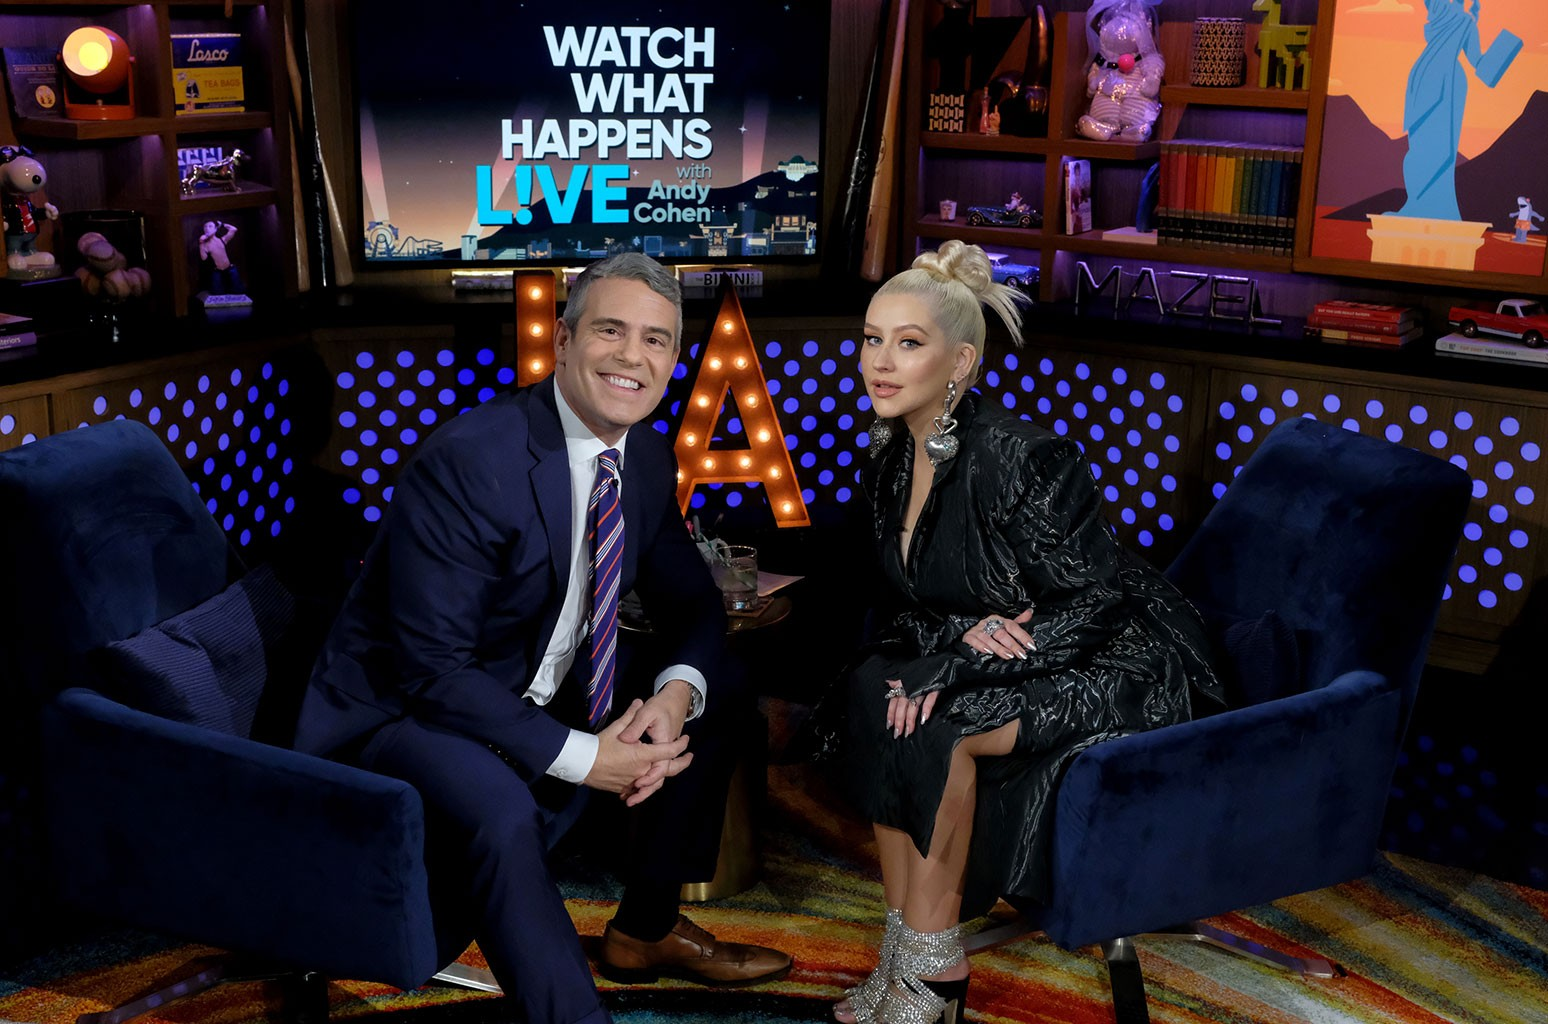 Christina Aguilera on Watch What Happens Live with Andy Cohen.